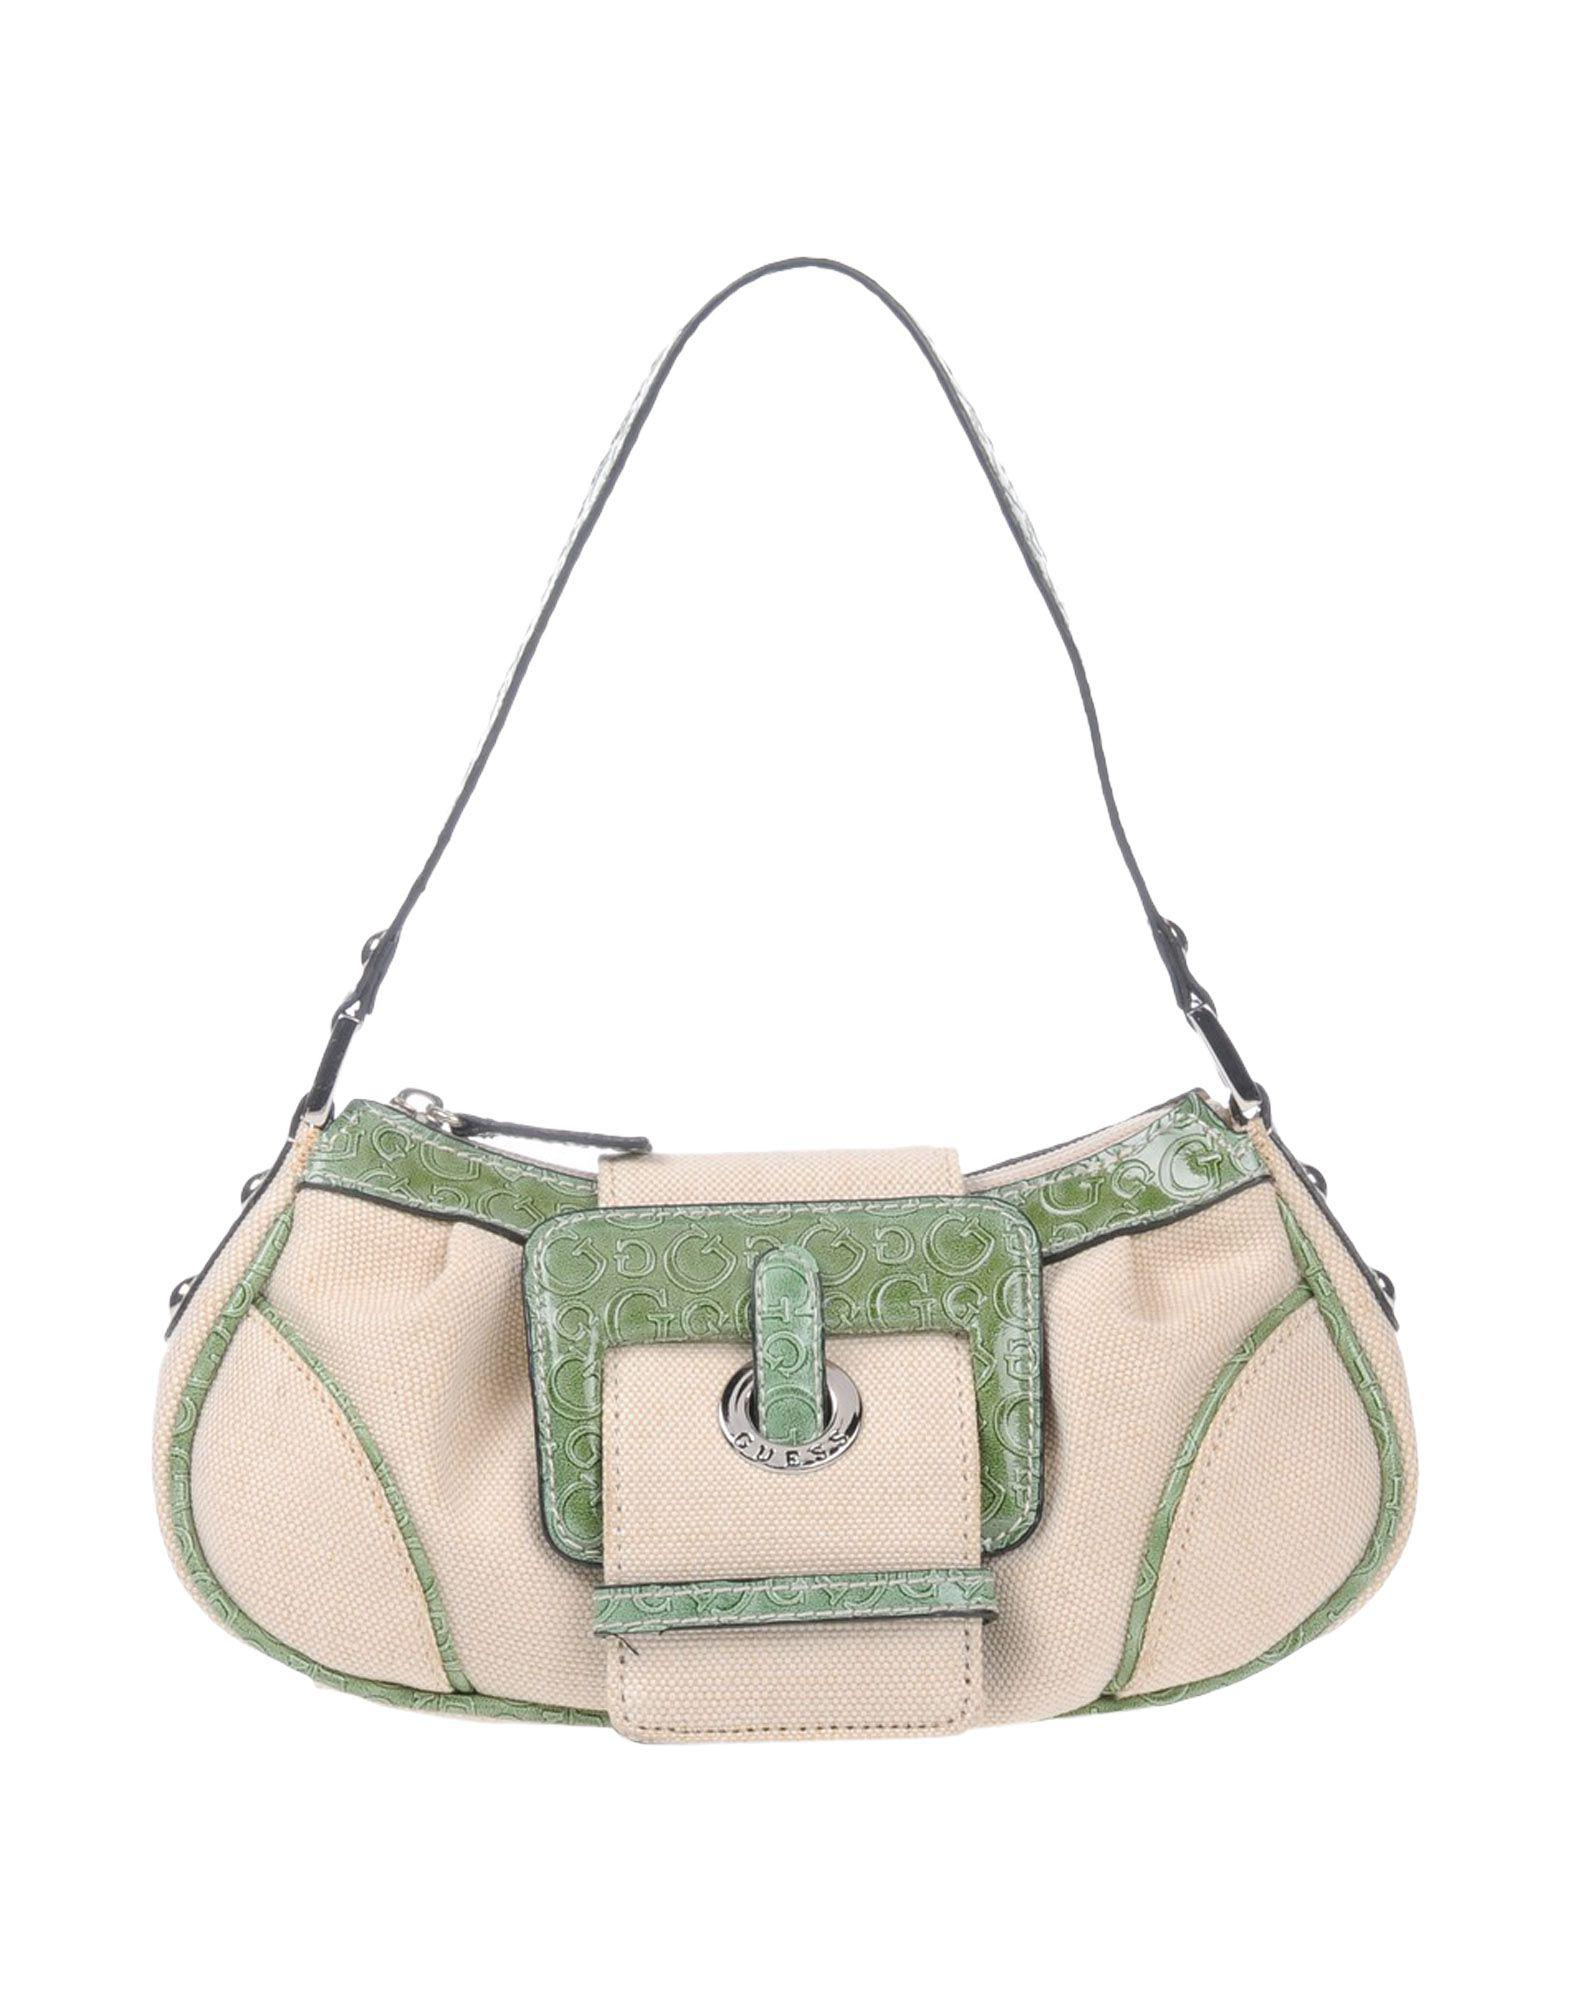 a4c5639361f0 Lyst - Guess Handbags in Green